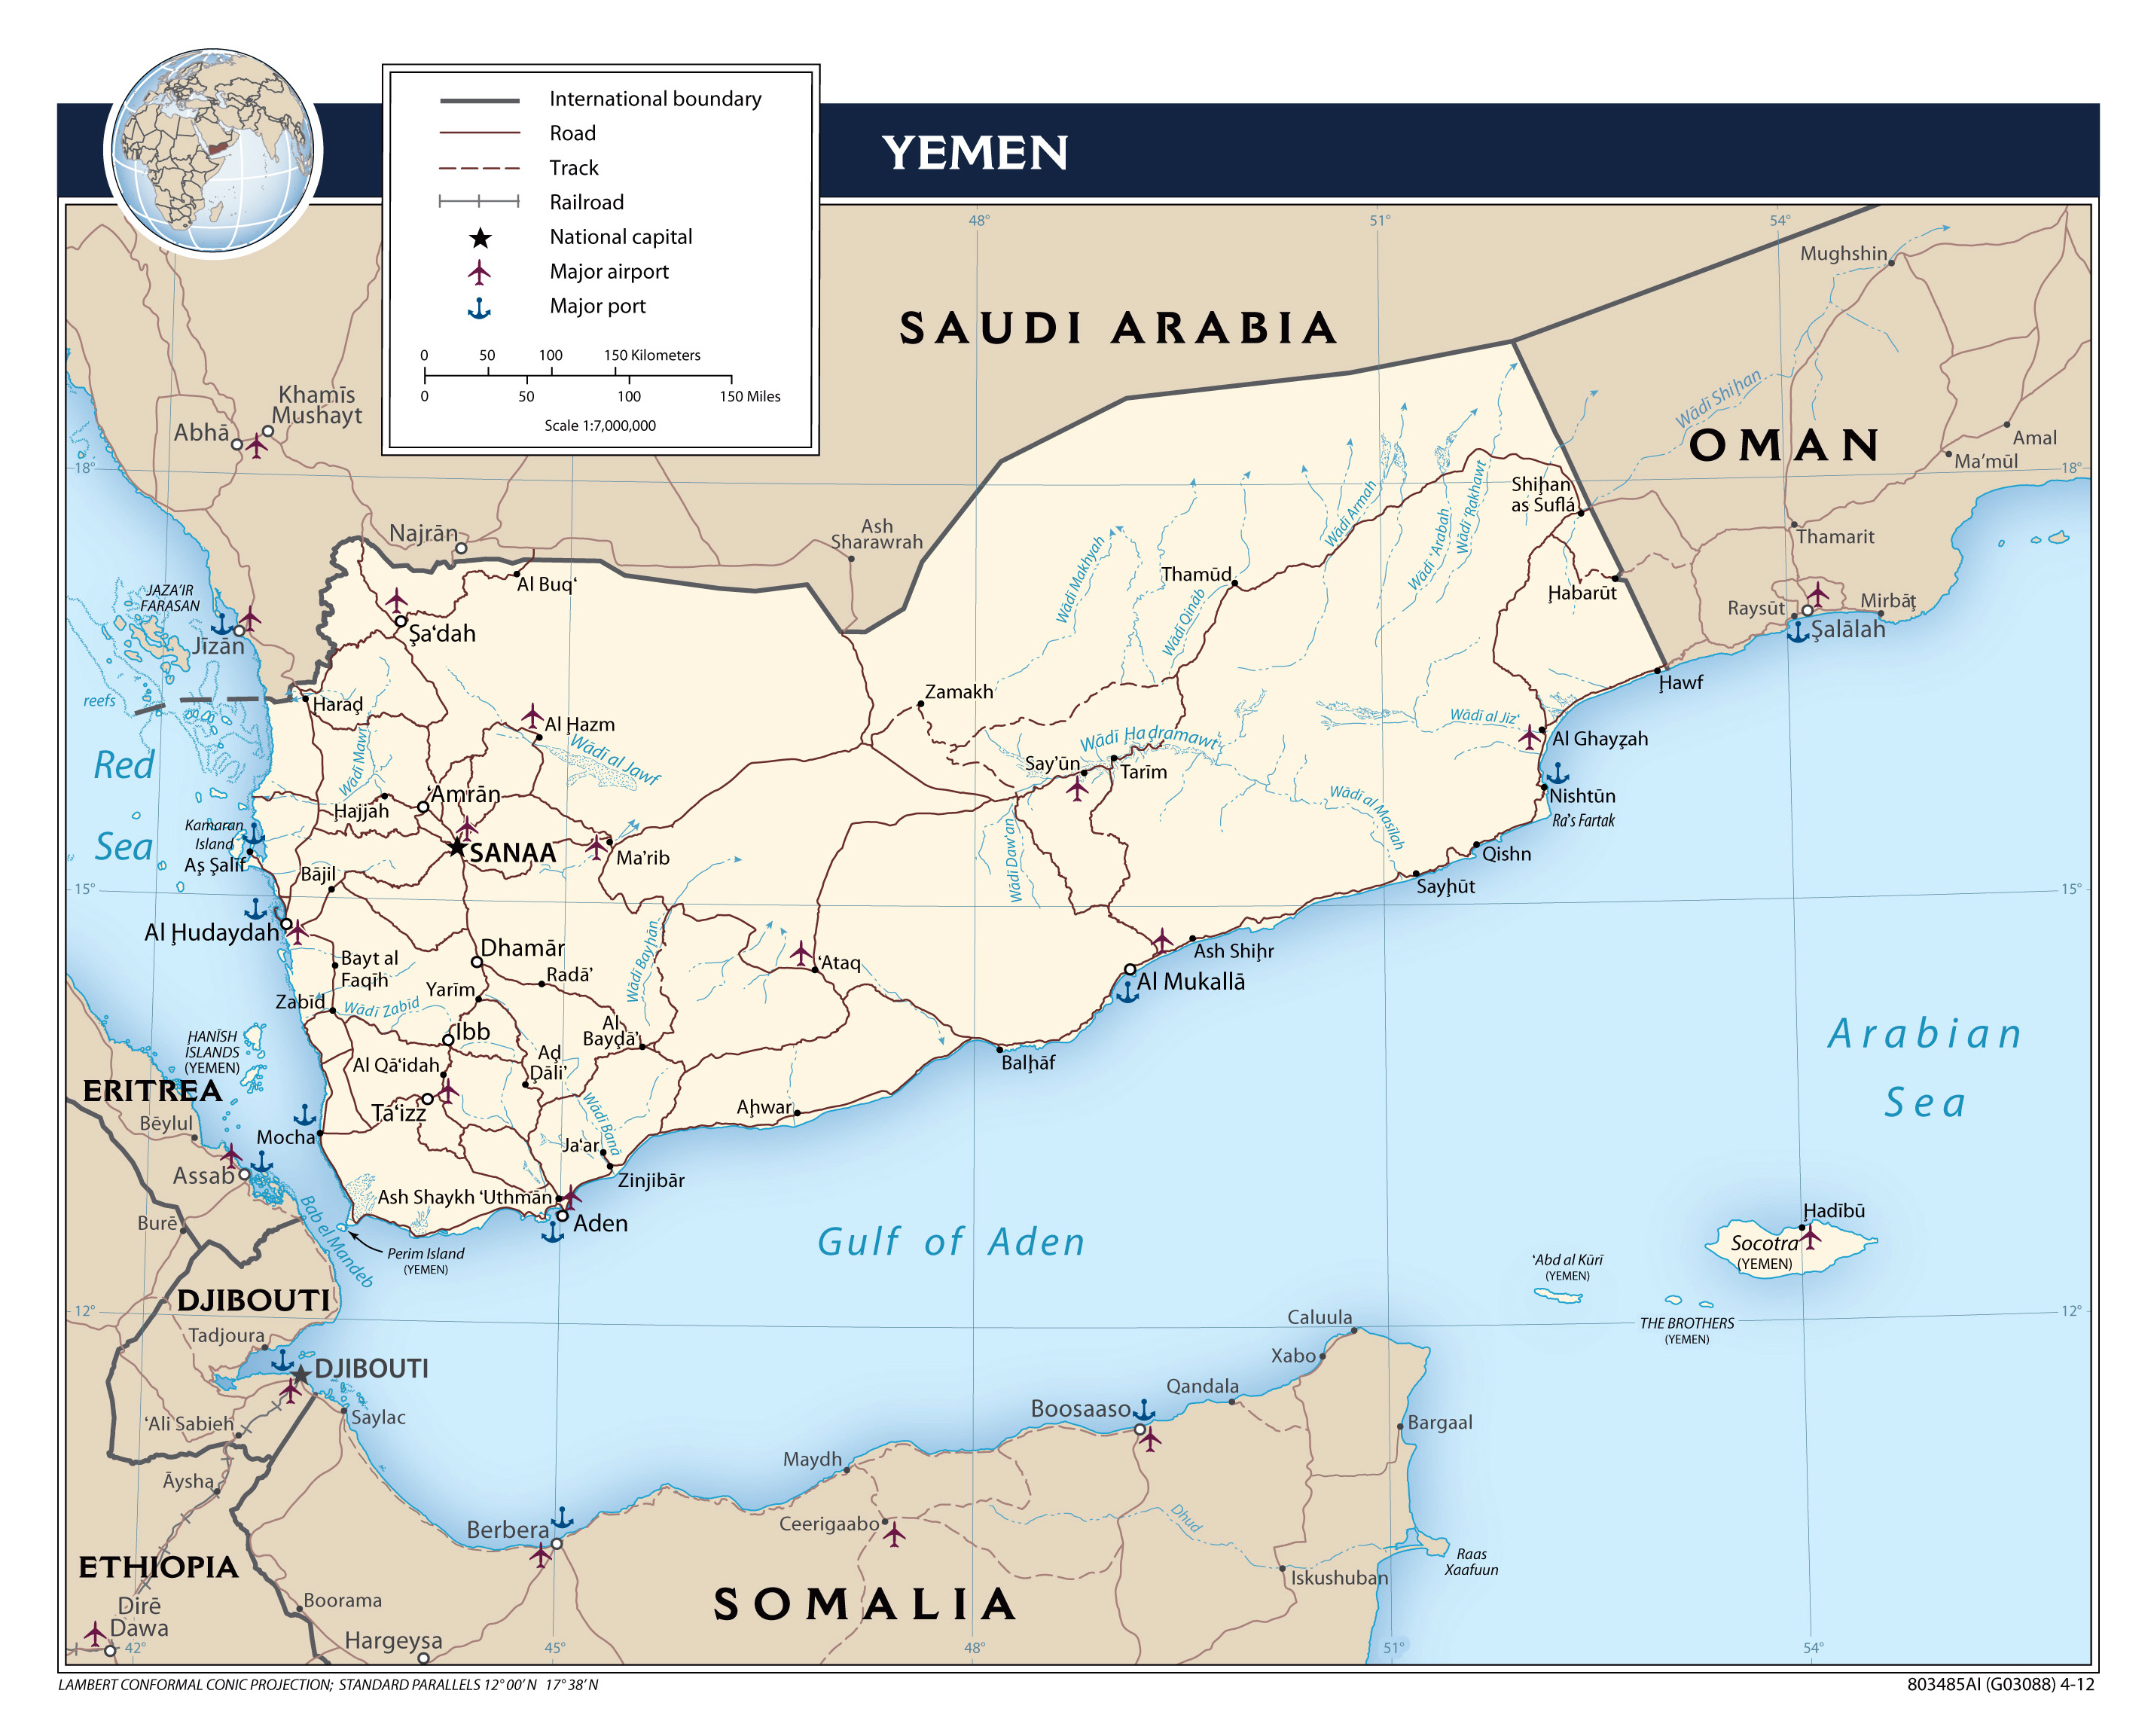 large scale political map of yemen with roads major cities and airports 2012